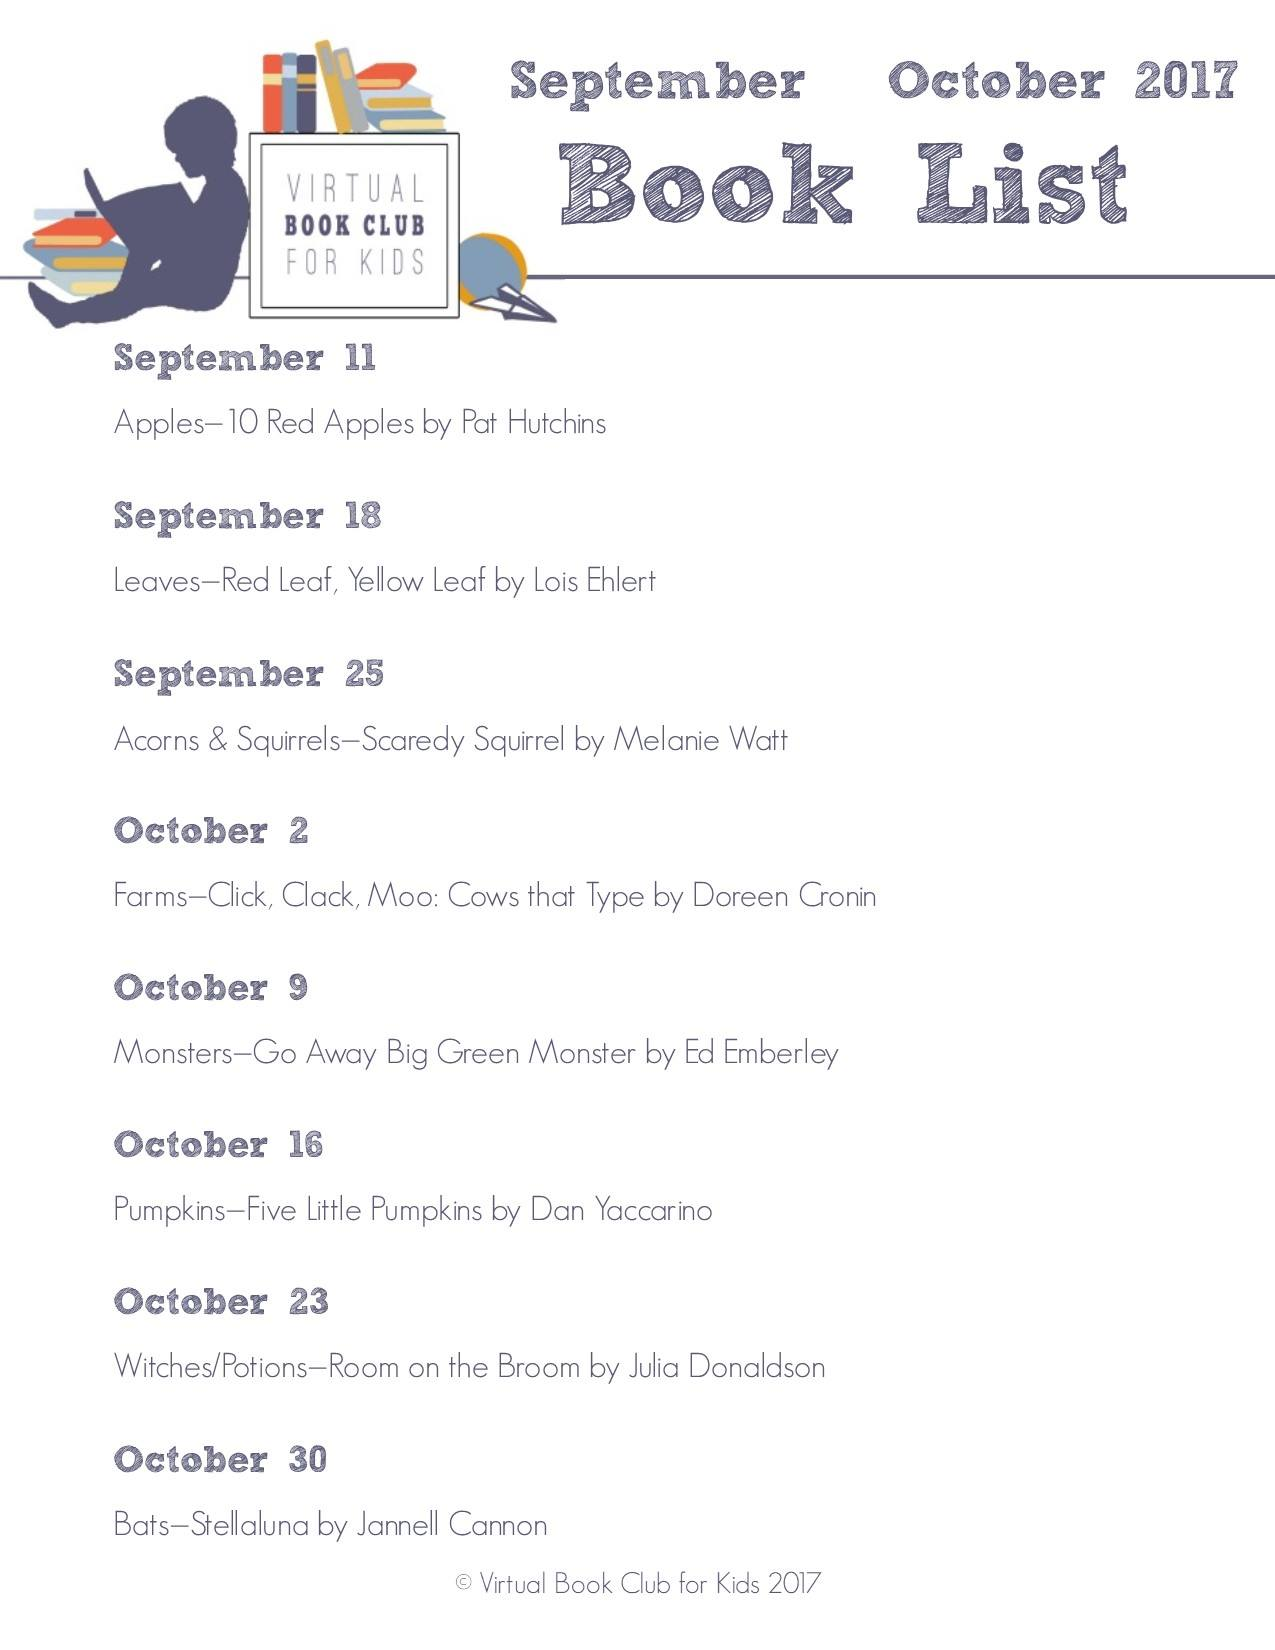 September October Book List for Virtual Book Club for Kids